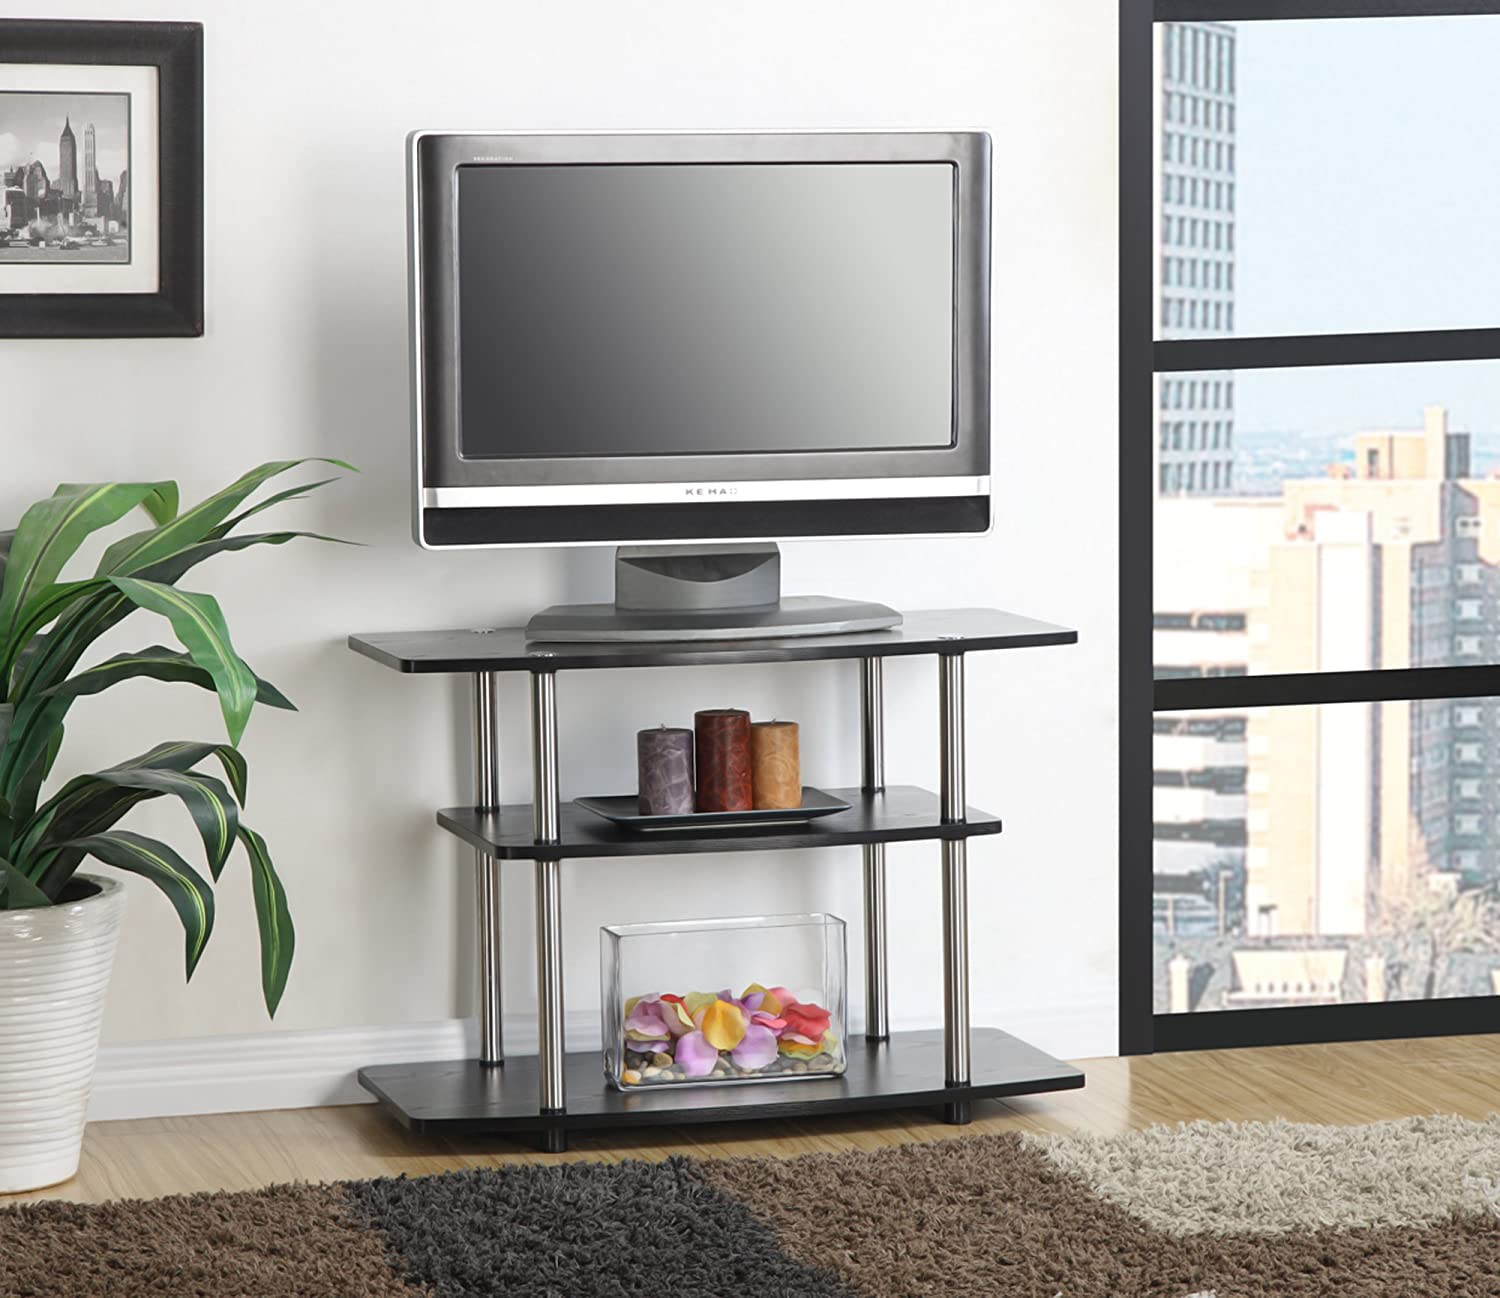 Amazoncom Convenience Concepts DesignsGo Tier TV Stand For - Home tv stand furniture designs